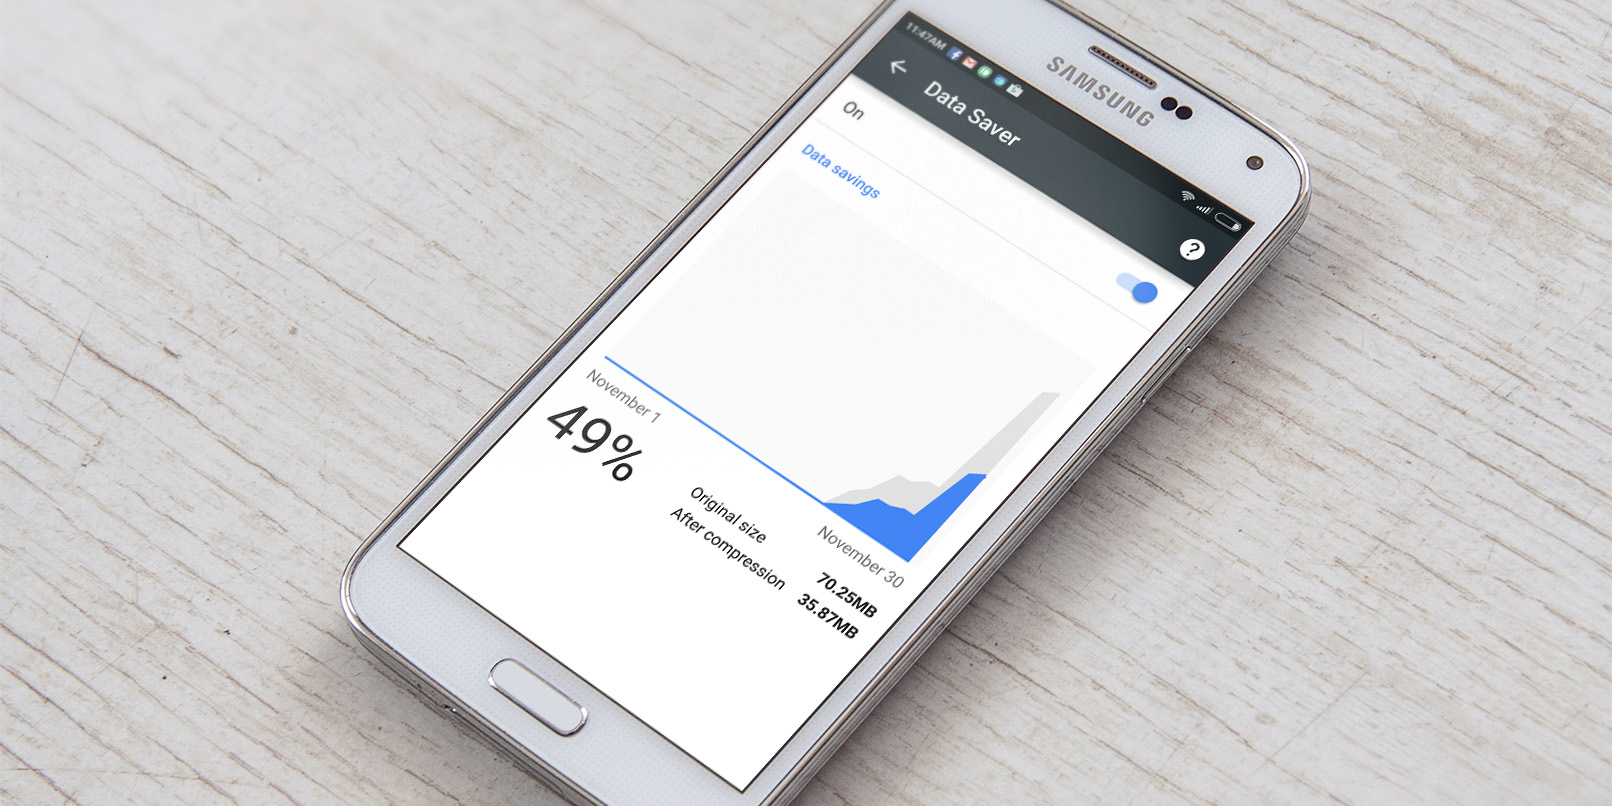 Chrome for Android skips images on sites for up to 70% data savings